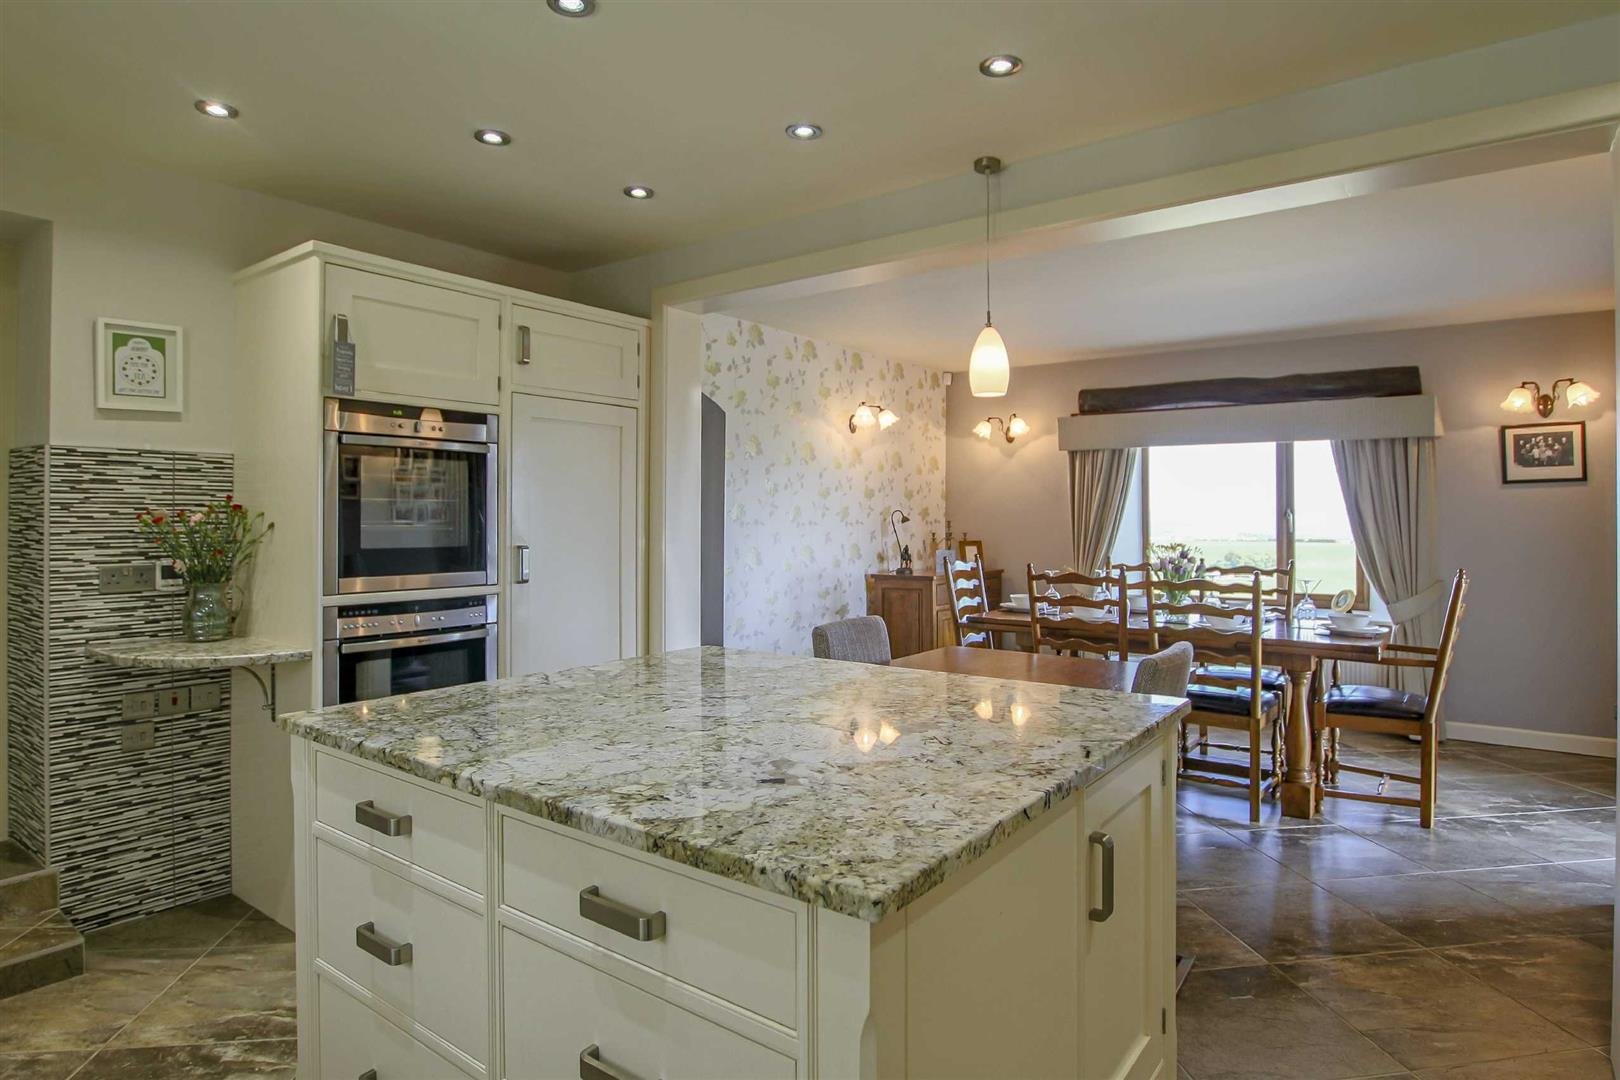 5 Bedroom Detached House For Sale - Image 3